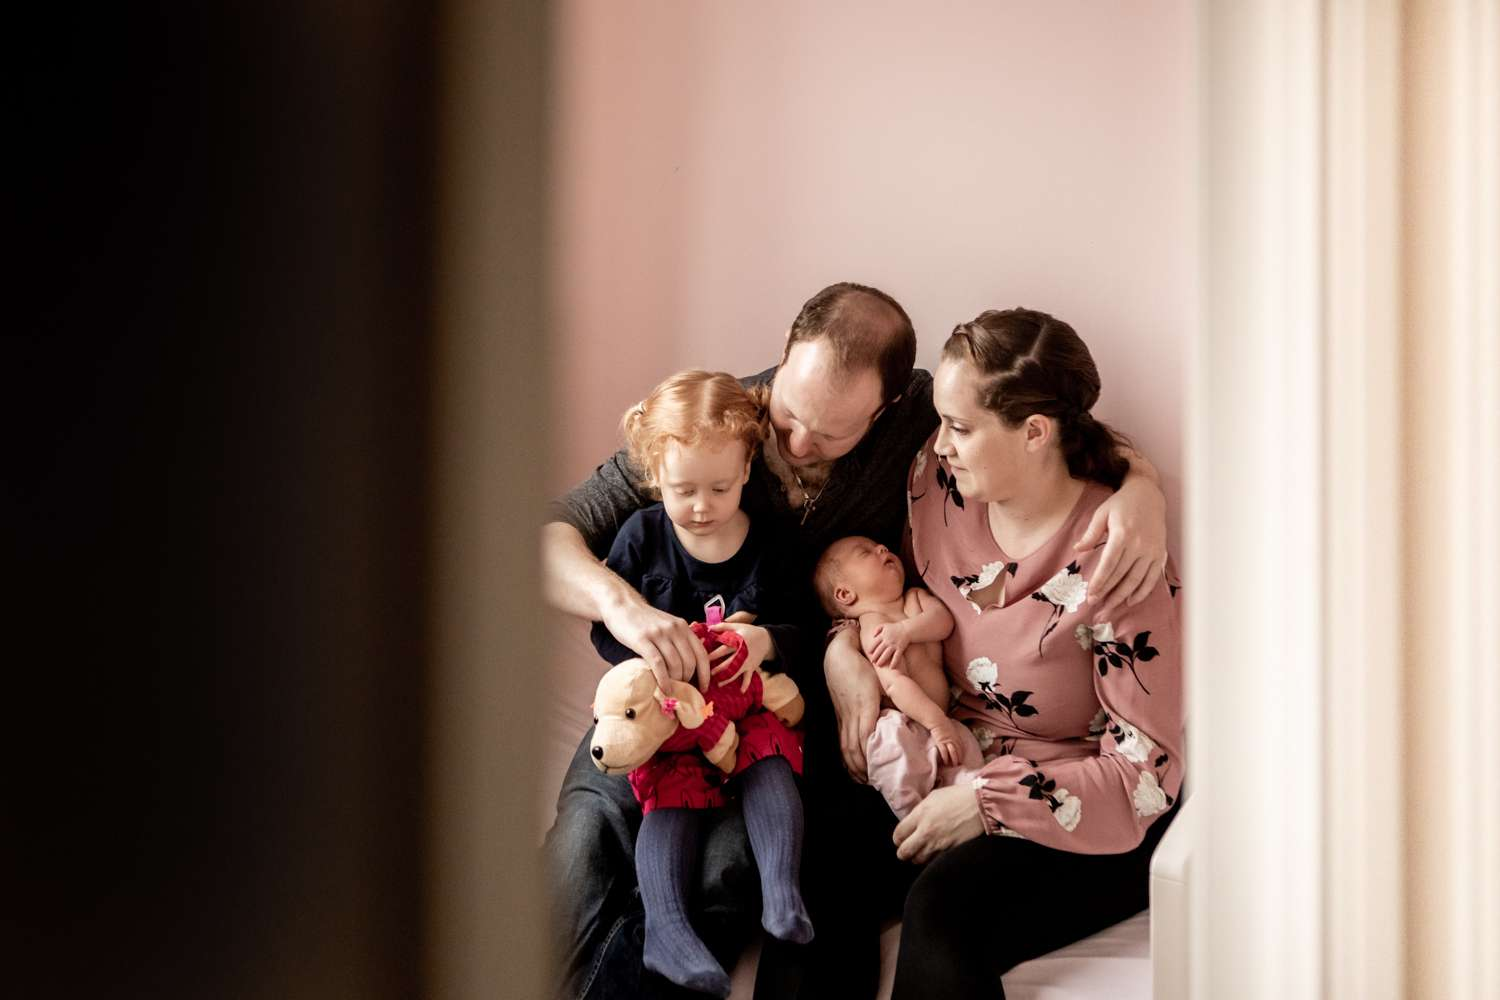 a family portrait photo of a family with toddler and newborn sat on parents laps on a bed in a pink bedroom